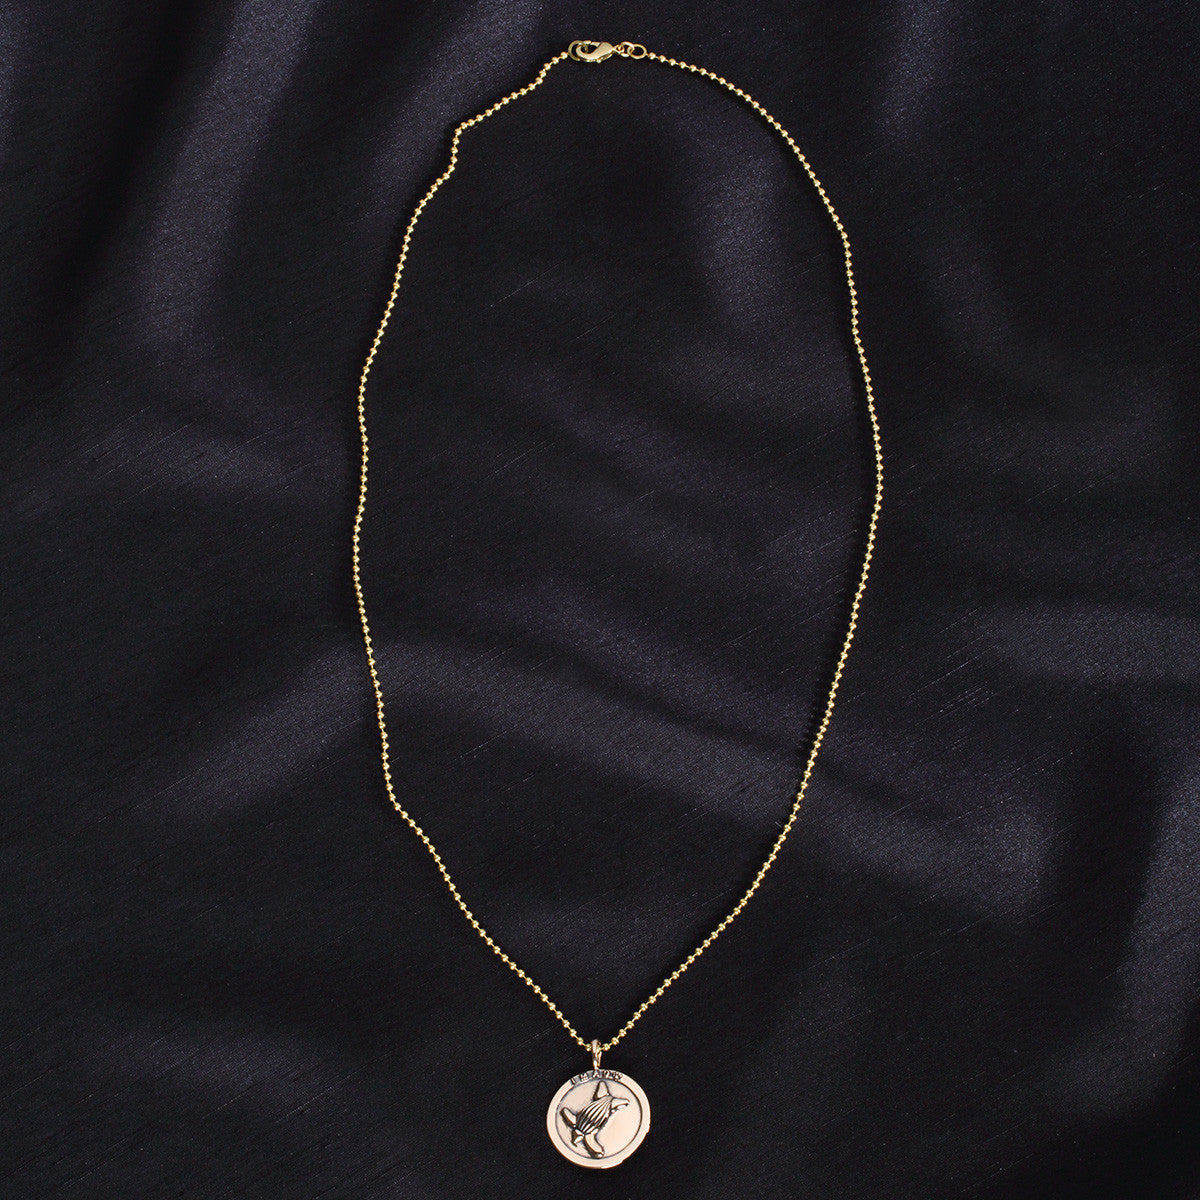 Leatherback Turtle Necklace